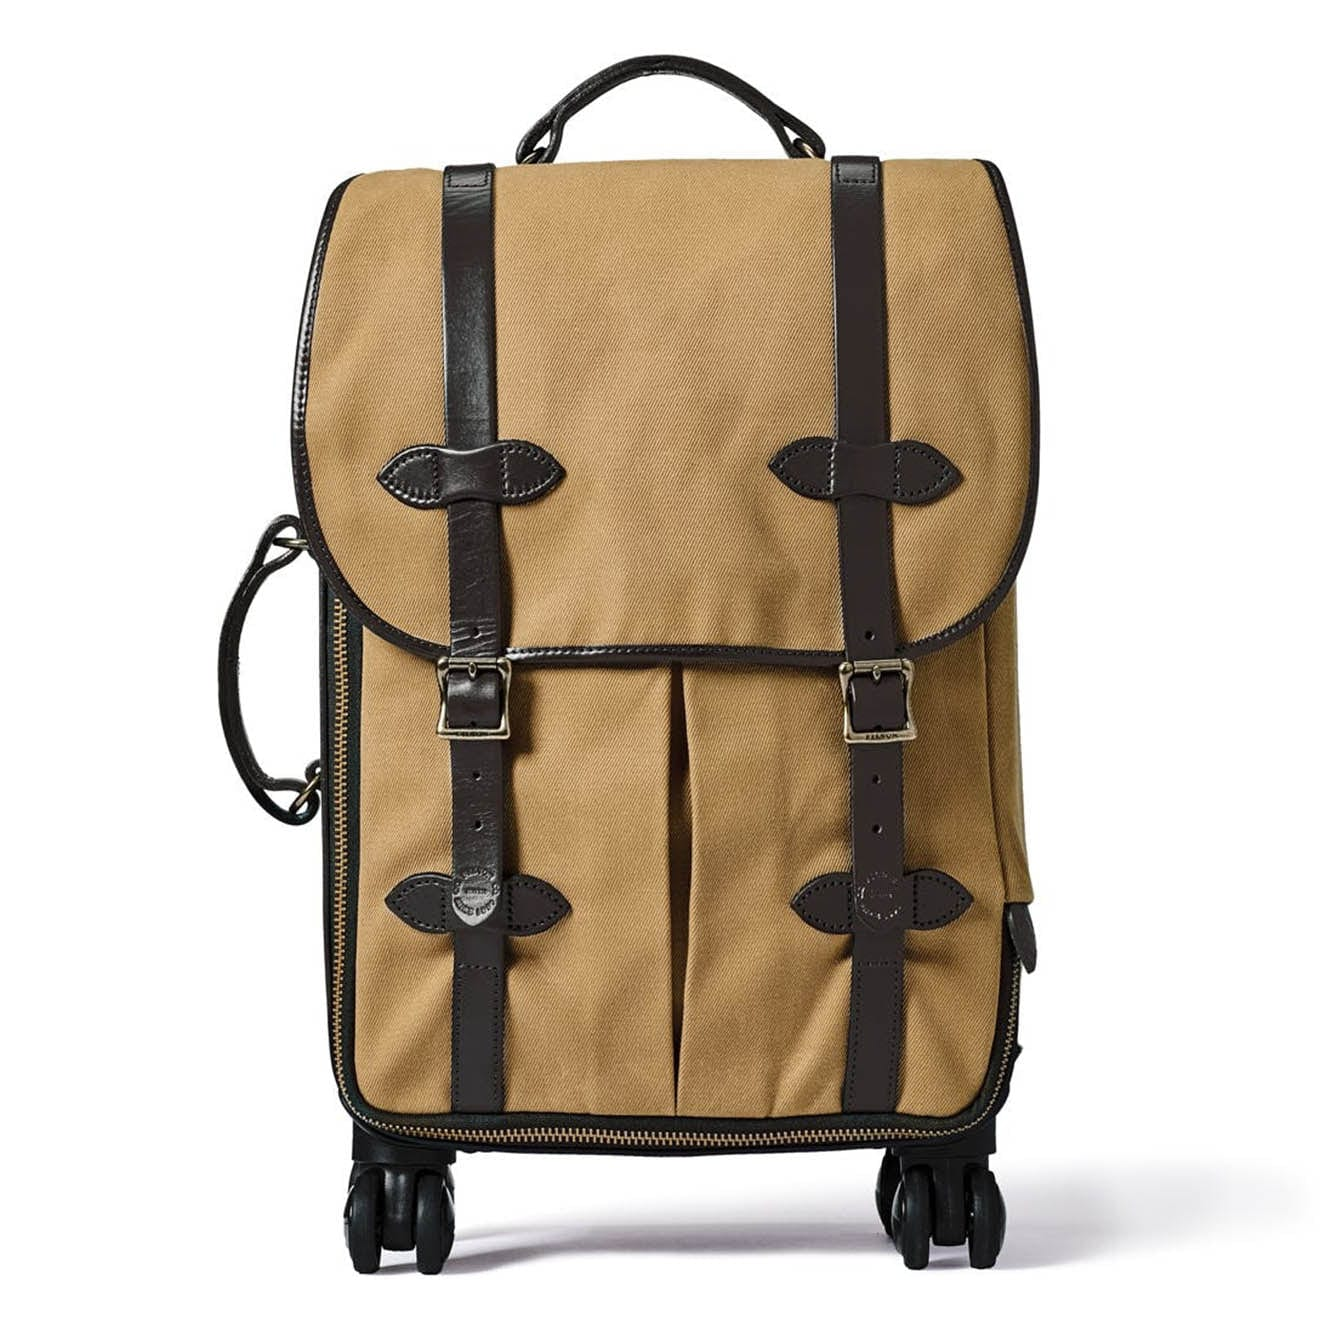 Filson Rolling 4-Wheel Carry-On Case Tan